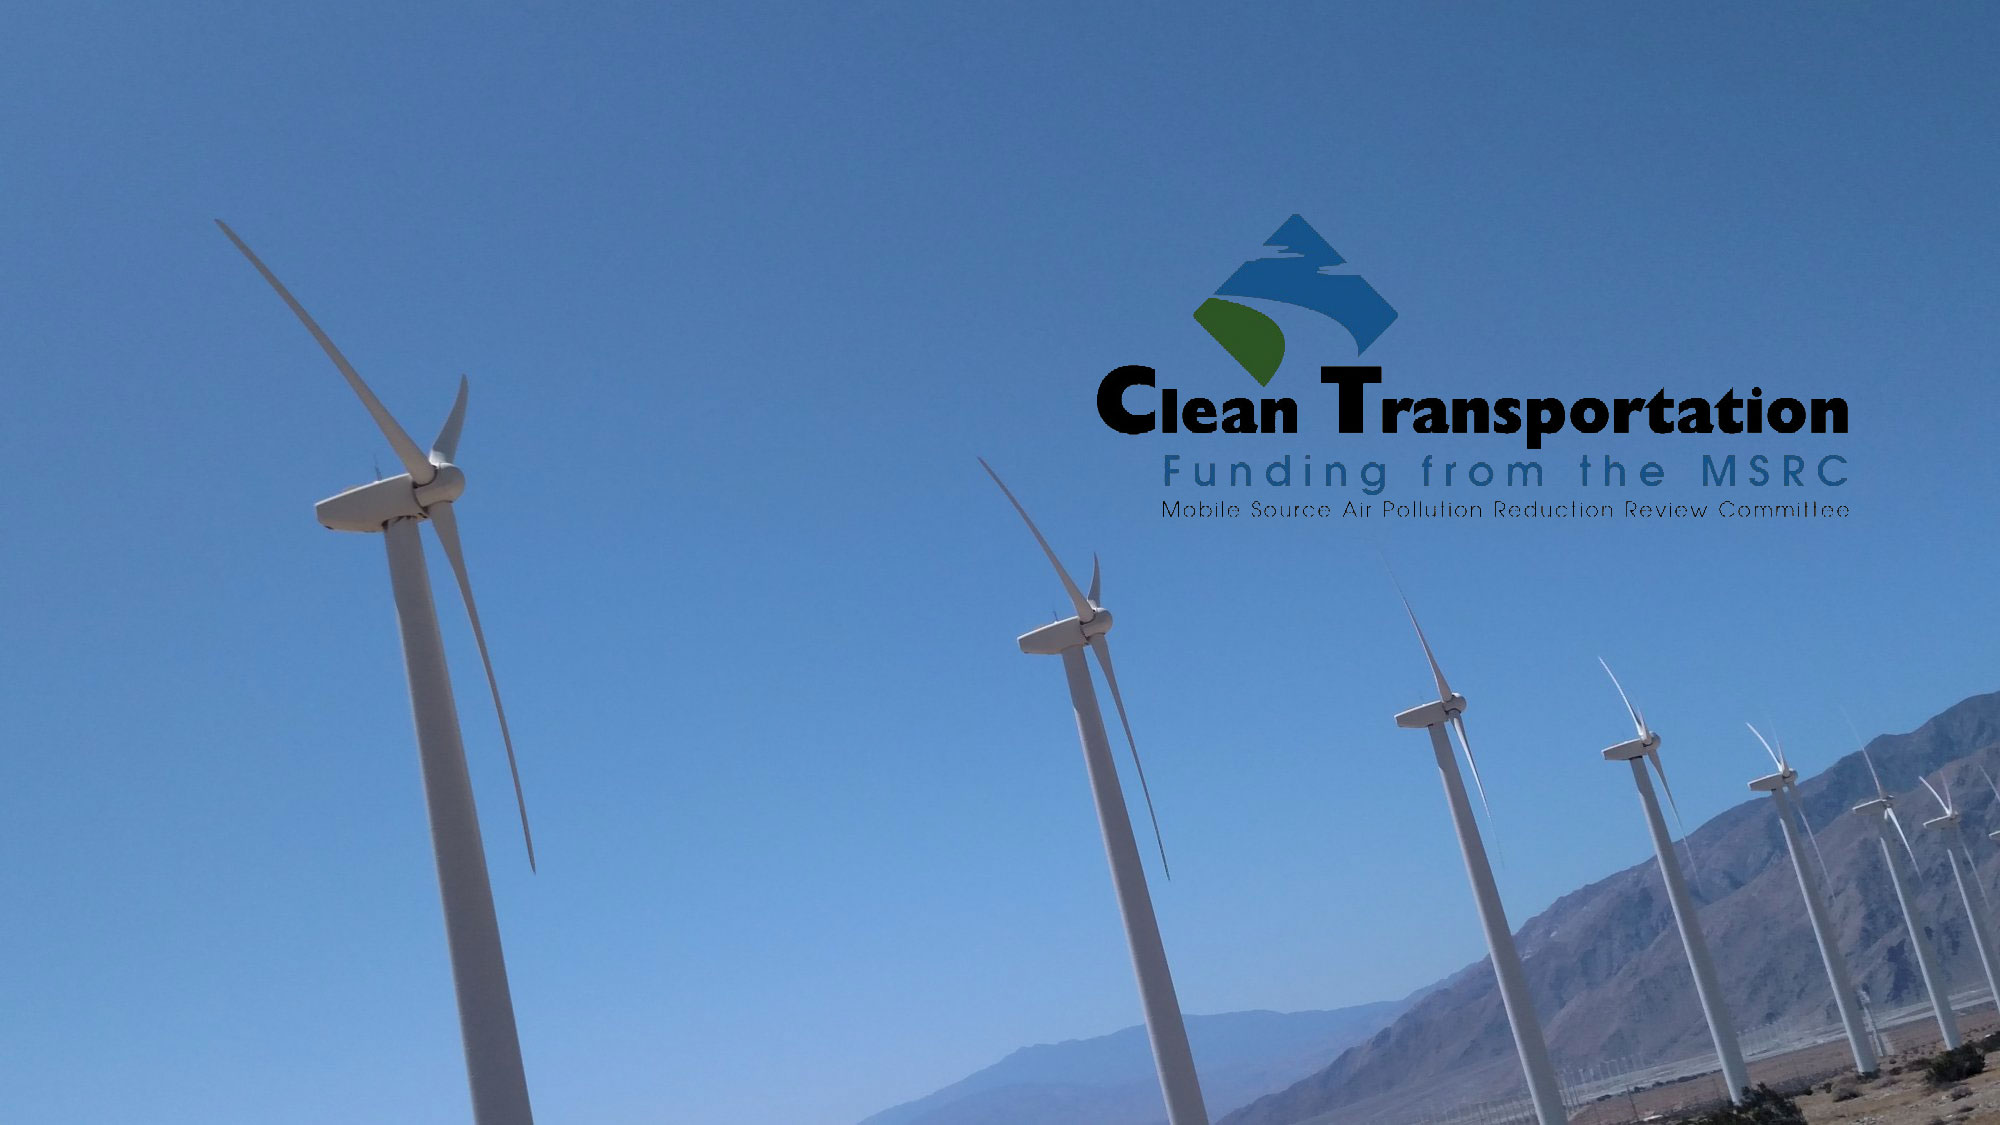 MSRC Clean Air Transportation Funding